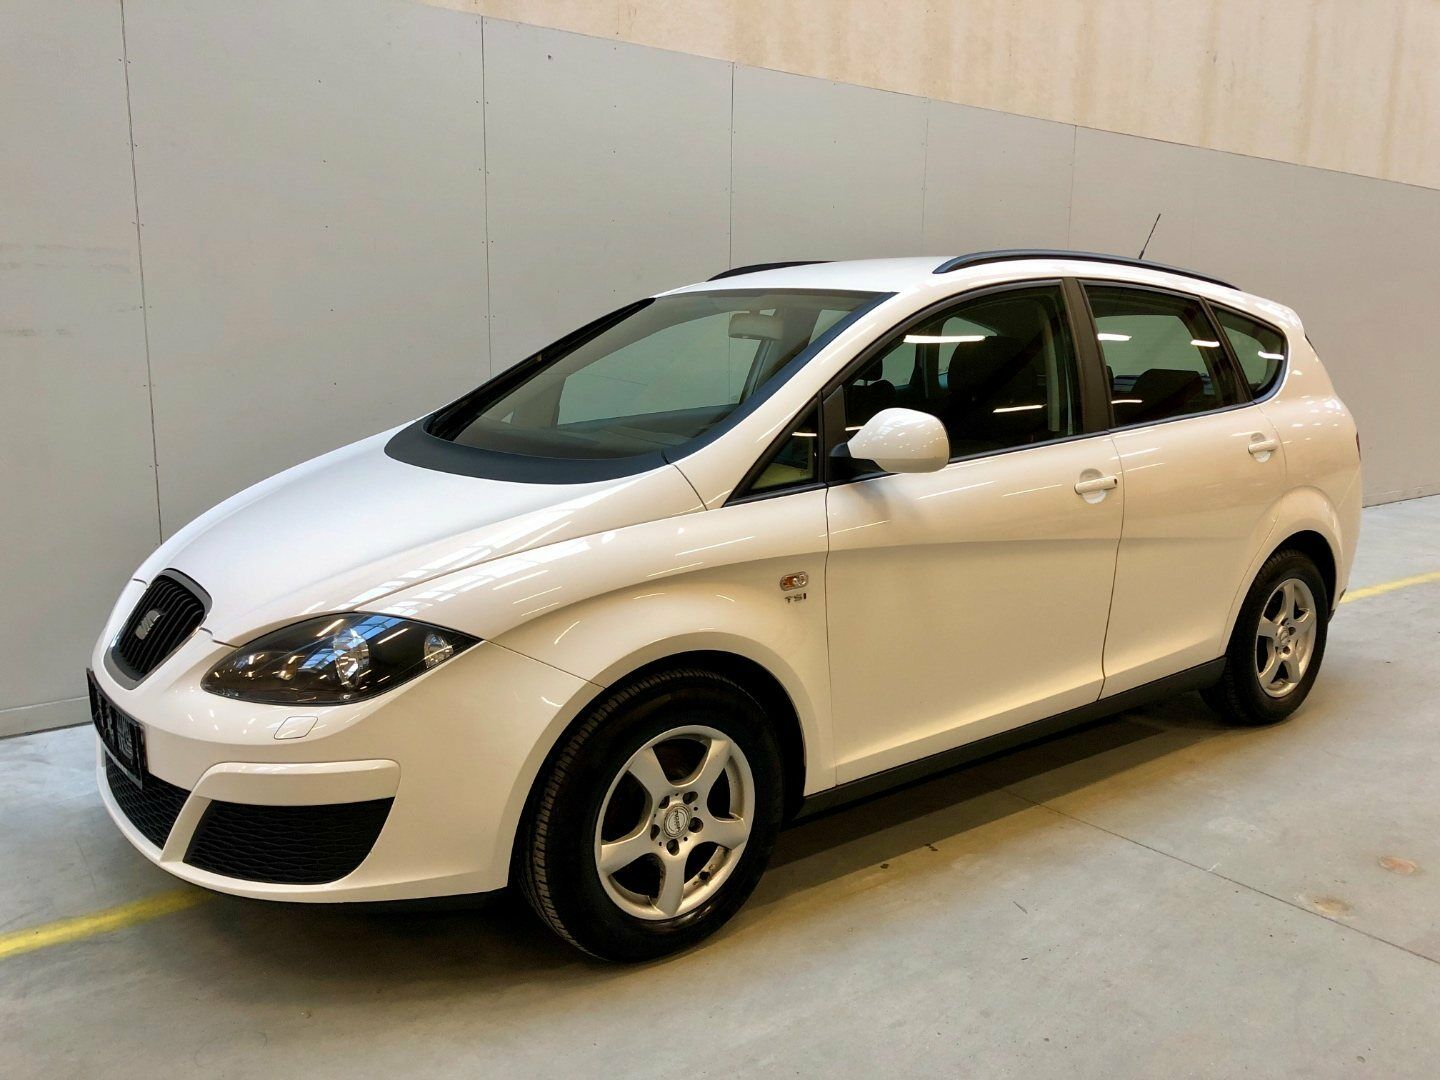 Seat Altea XL 1,2 TSi 105 Reference eco 5d - 104.900 kr.